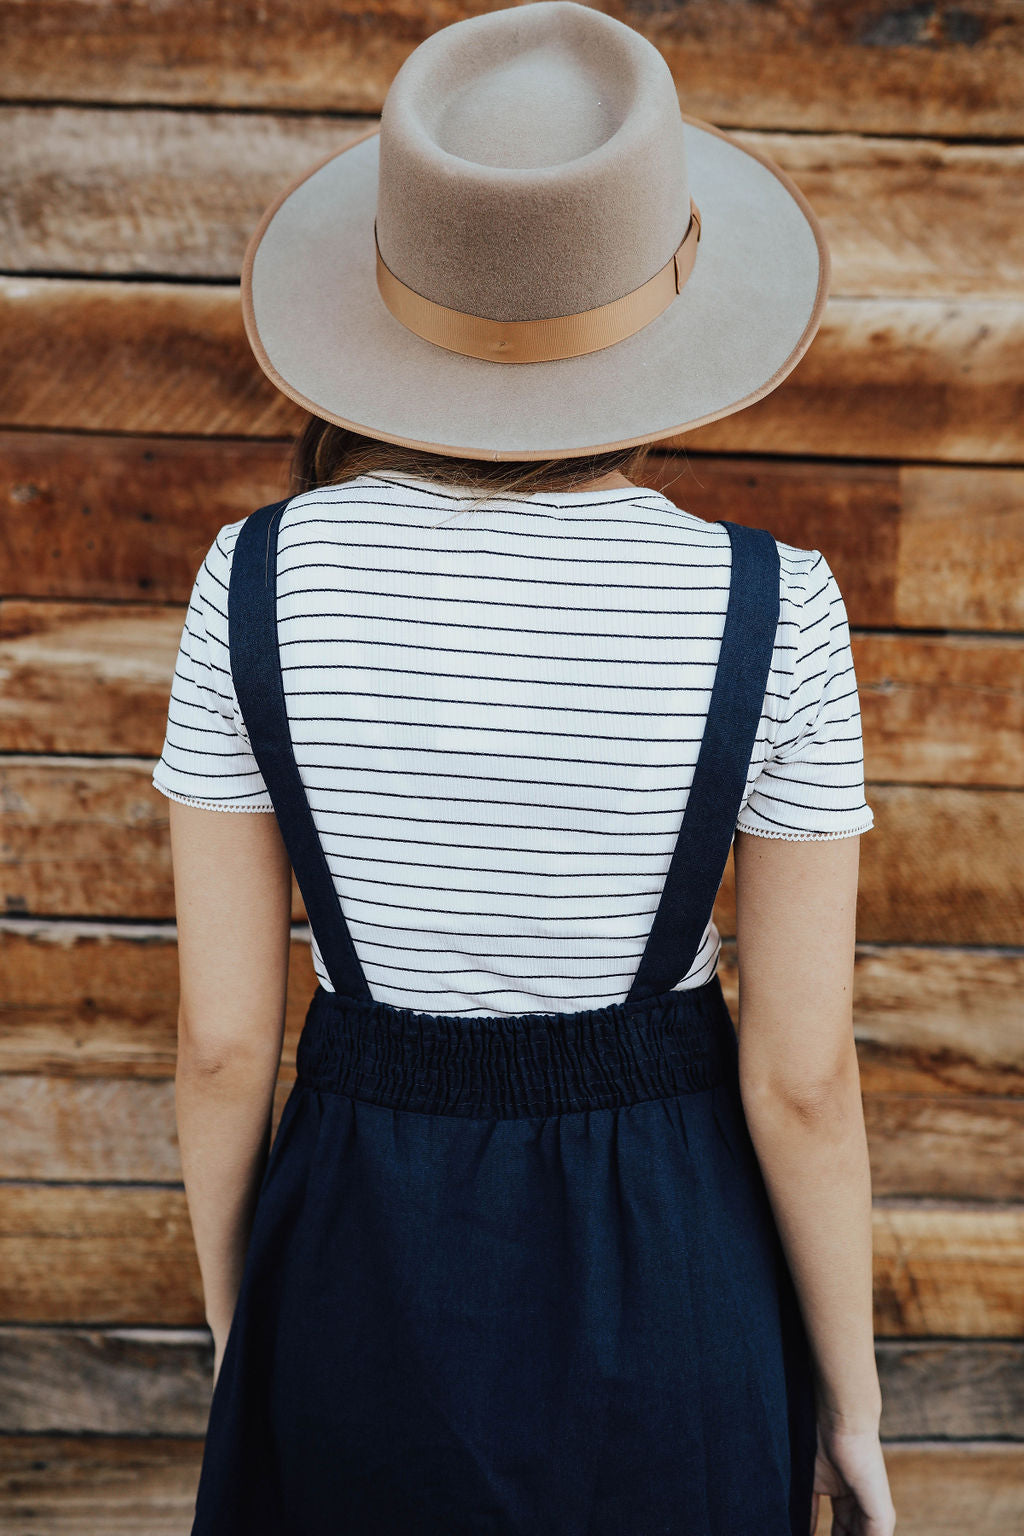 THE MARIANNE OVERALL DRESS IN DARK NAVY